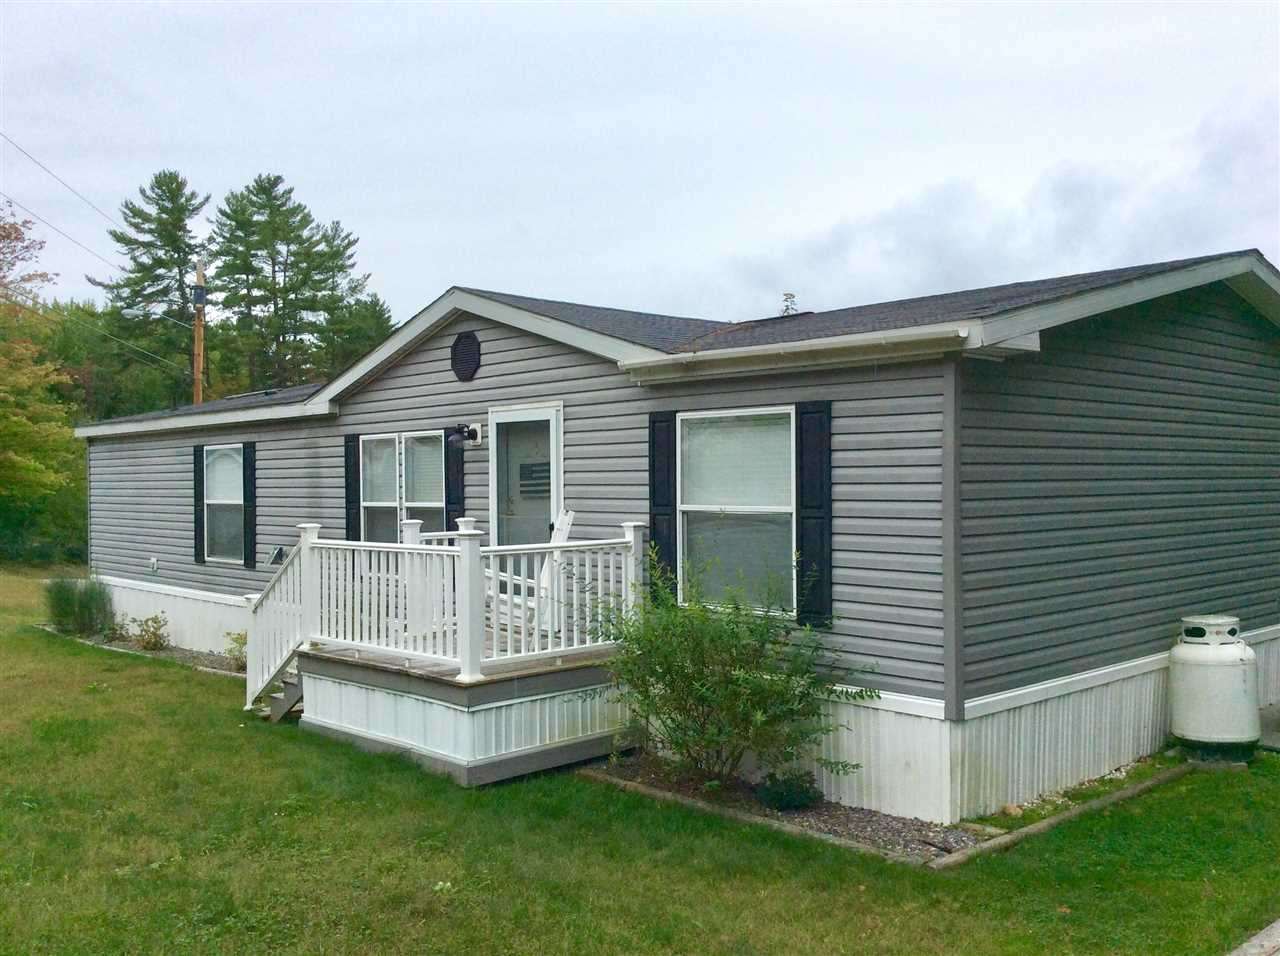 Double Wide Homes For Sale In Conway Nh Verani Realty